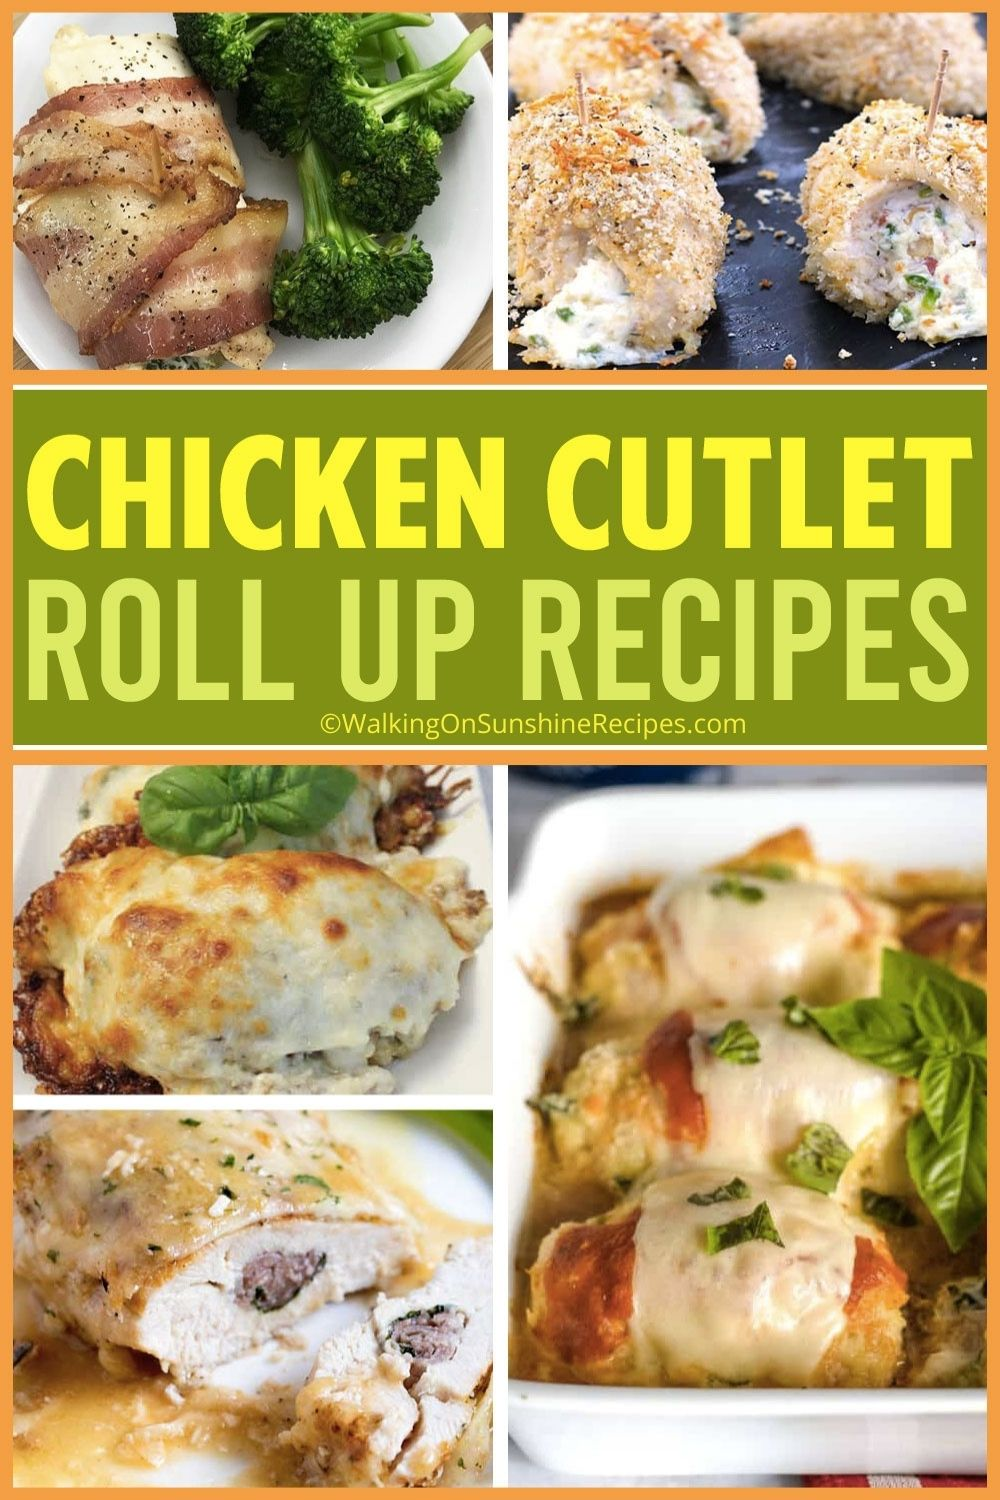 Collection of chicken cutlet rollup recipes.